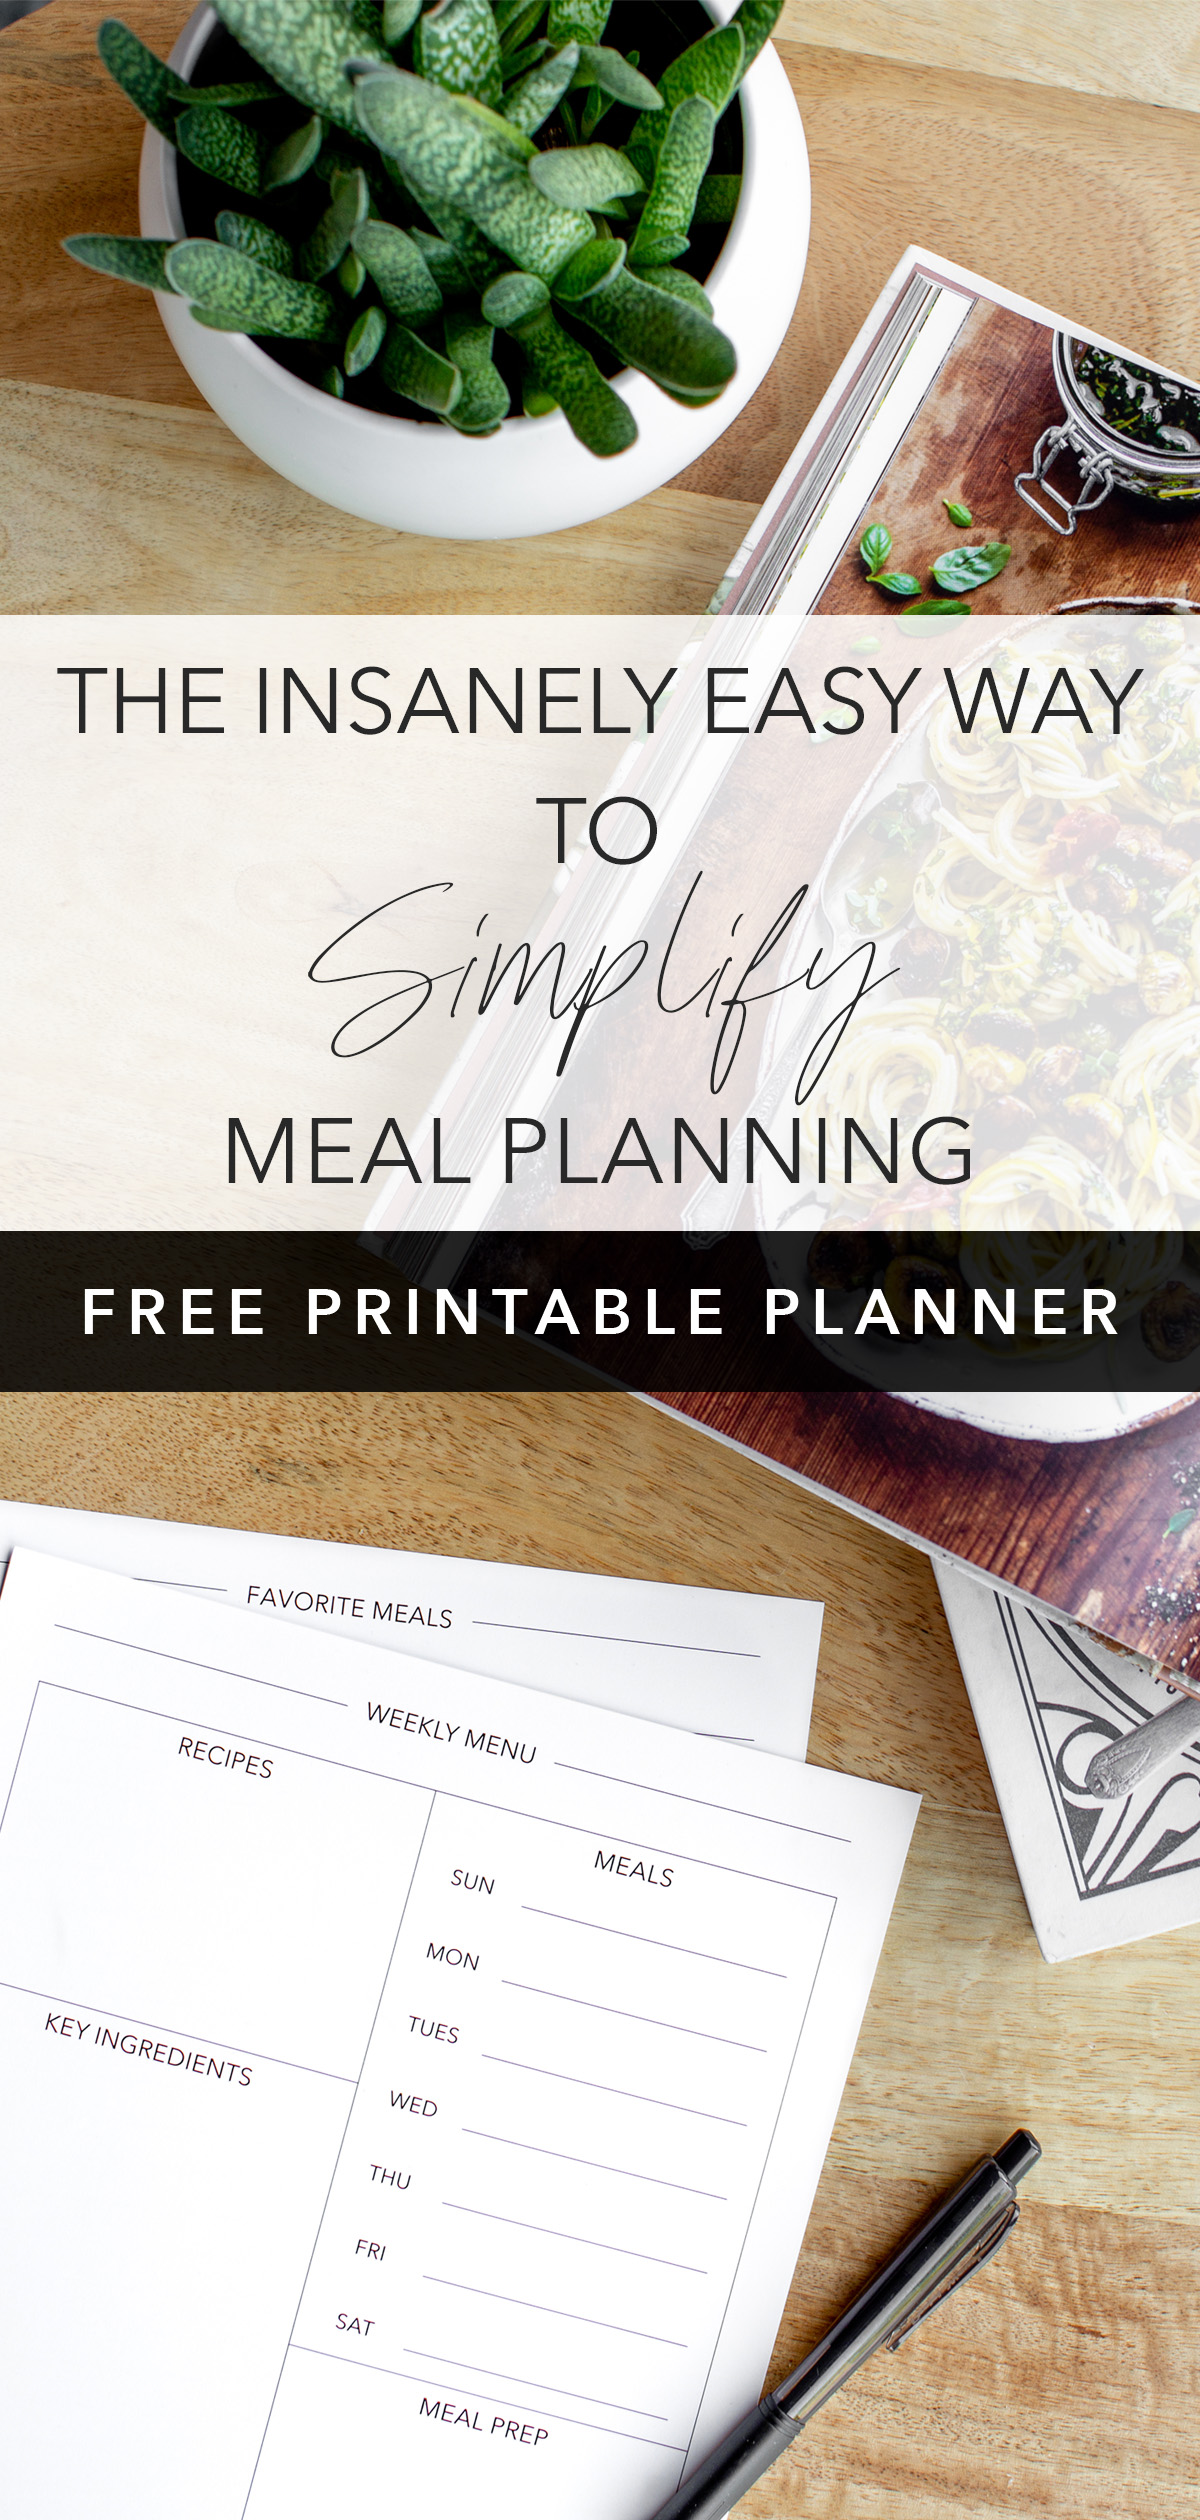 how to simplify meal planning modern minimalist meal planner pages with cookbook and plant on a wood table with title text overlay